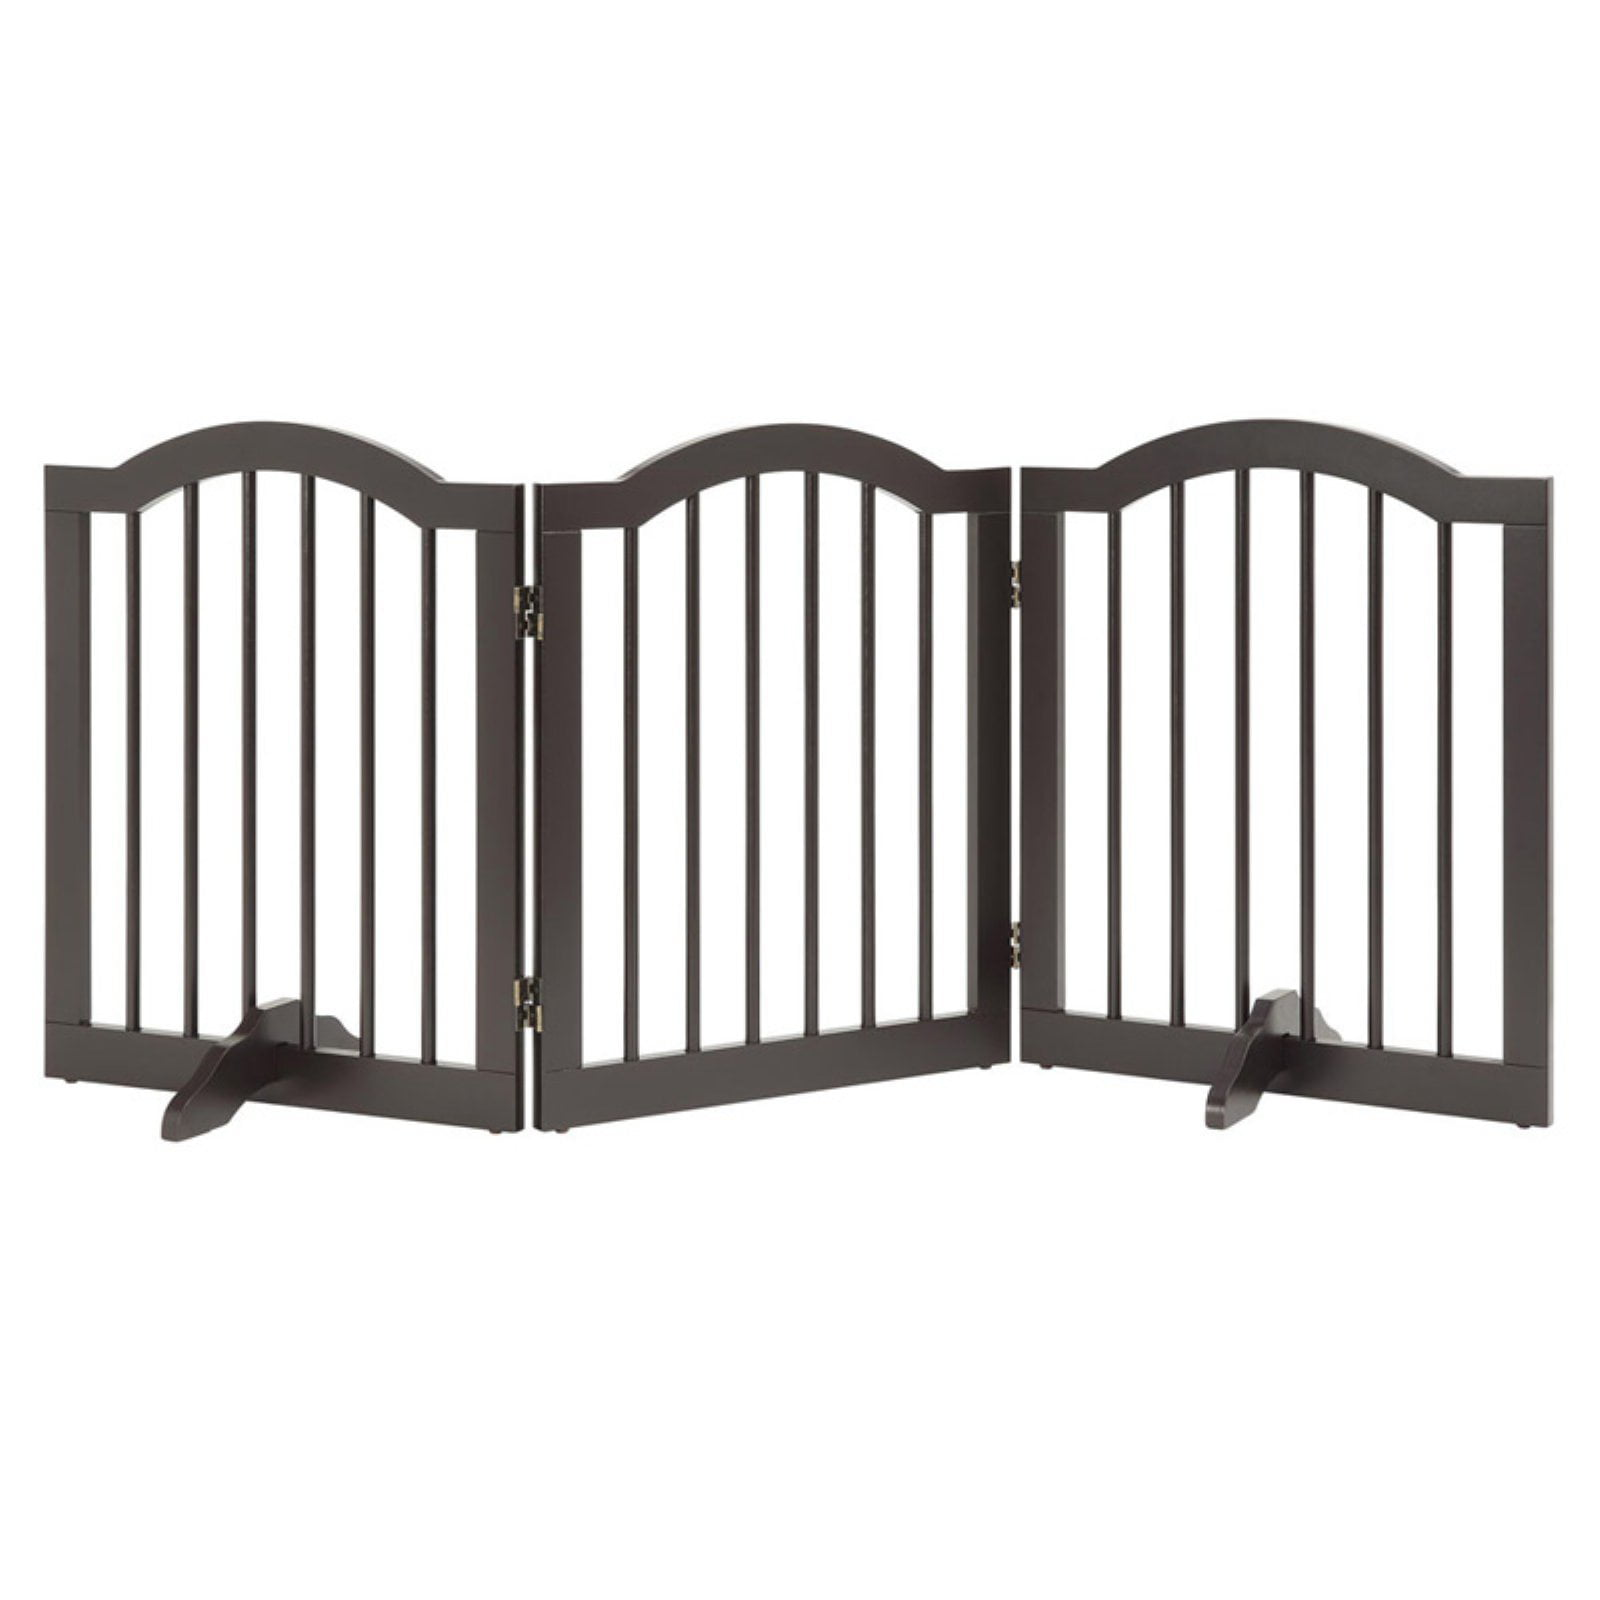 Unipaws Freestanding Wooden Dog Gate Foldable Pet Gate